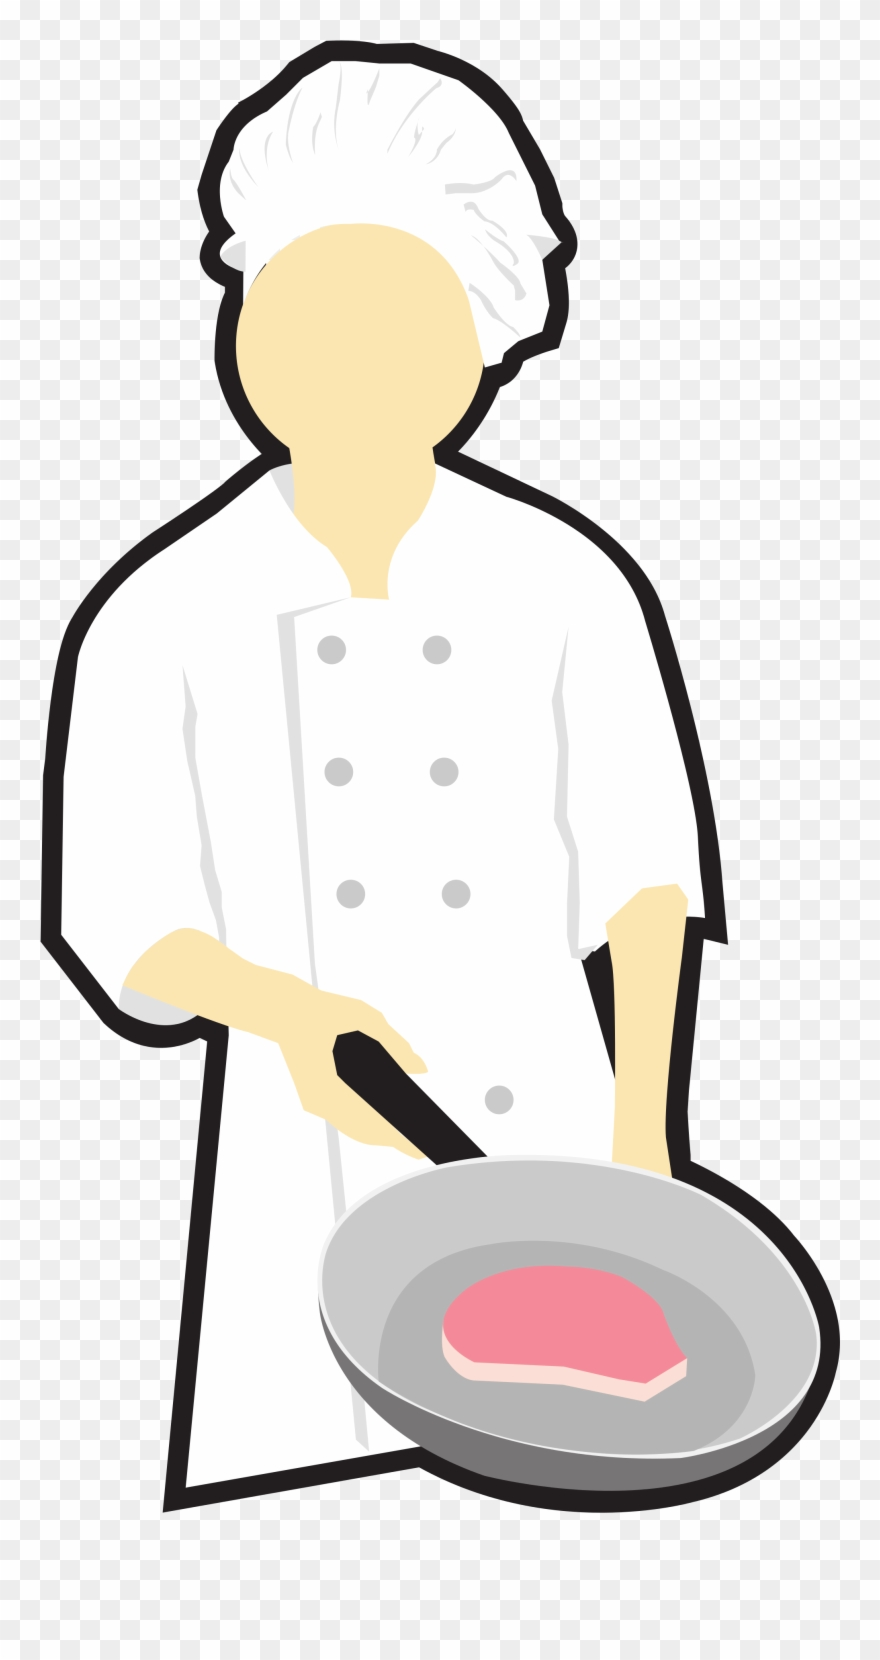 hight resolution of file chef cooking clip art svg wikimedia main cook chef clipart png download